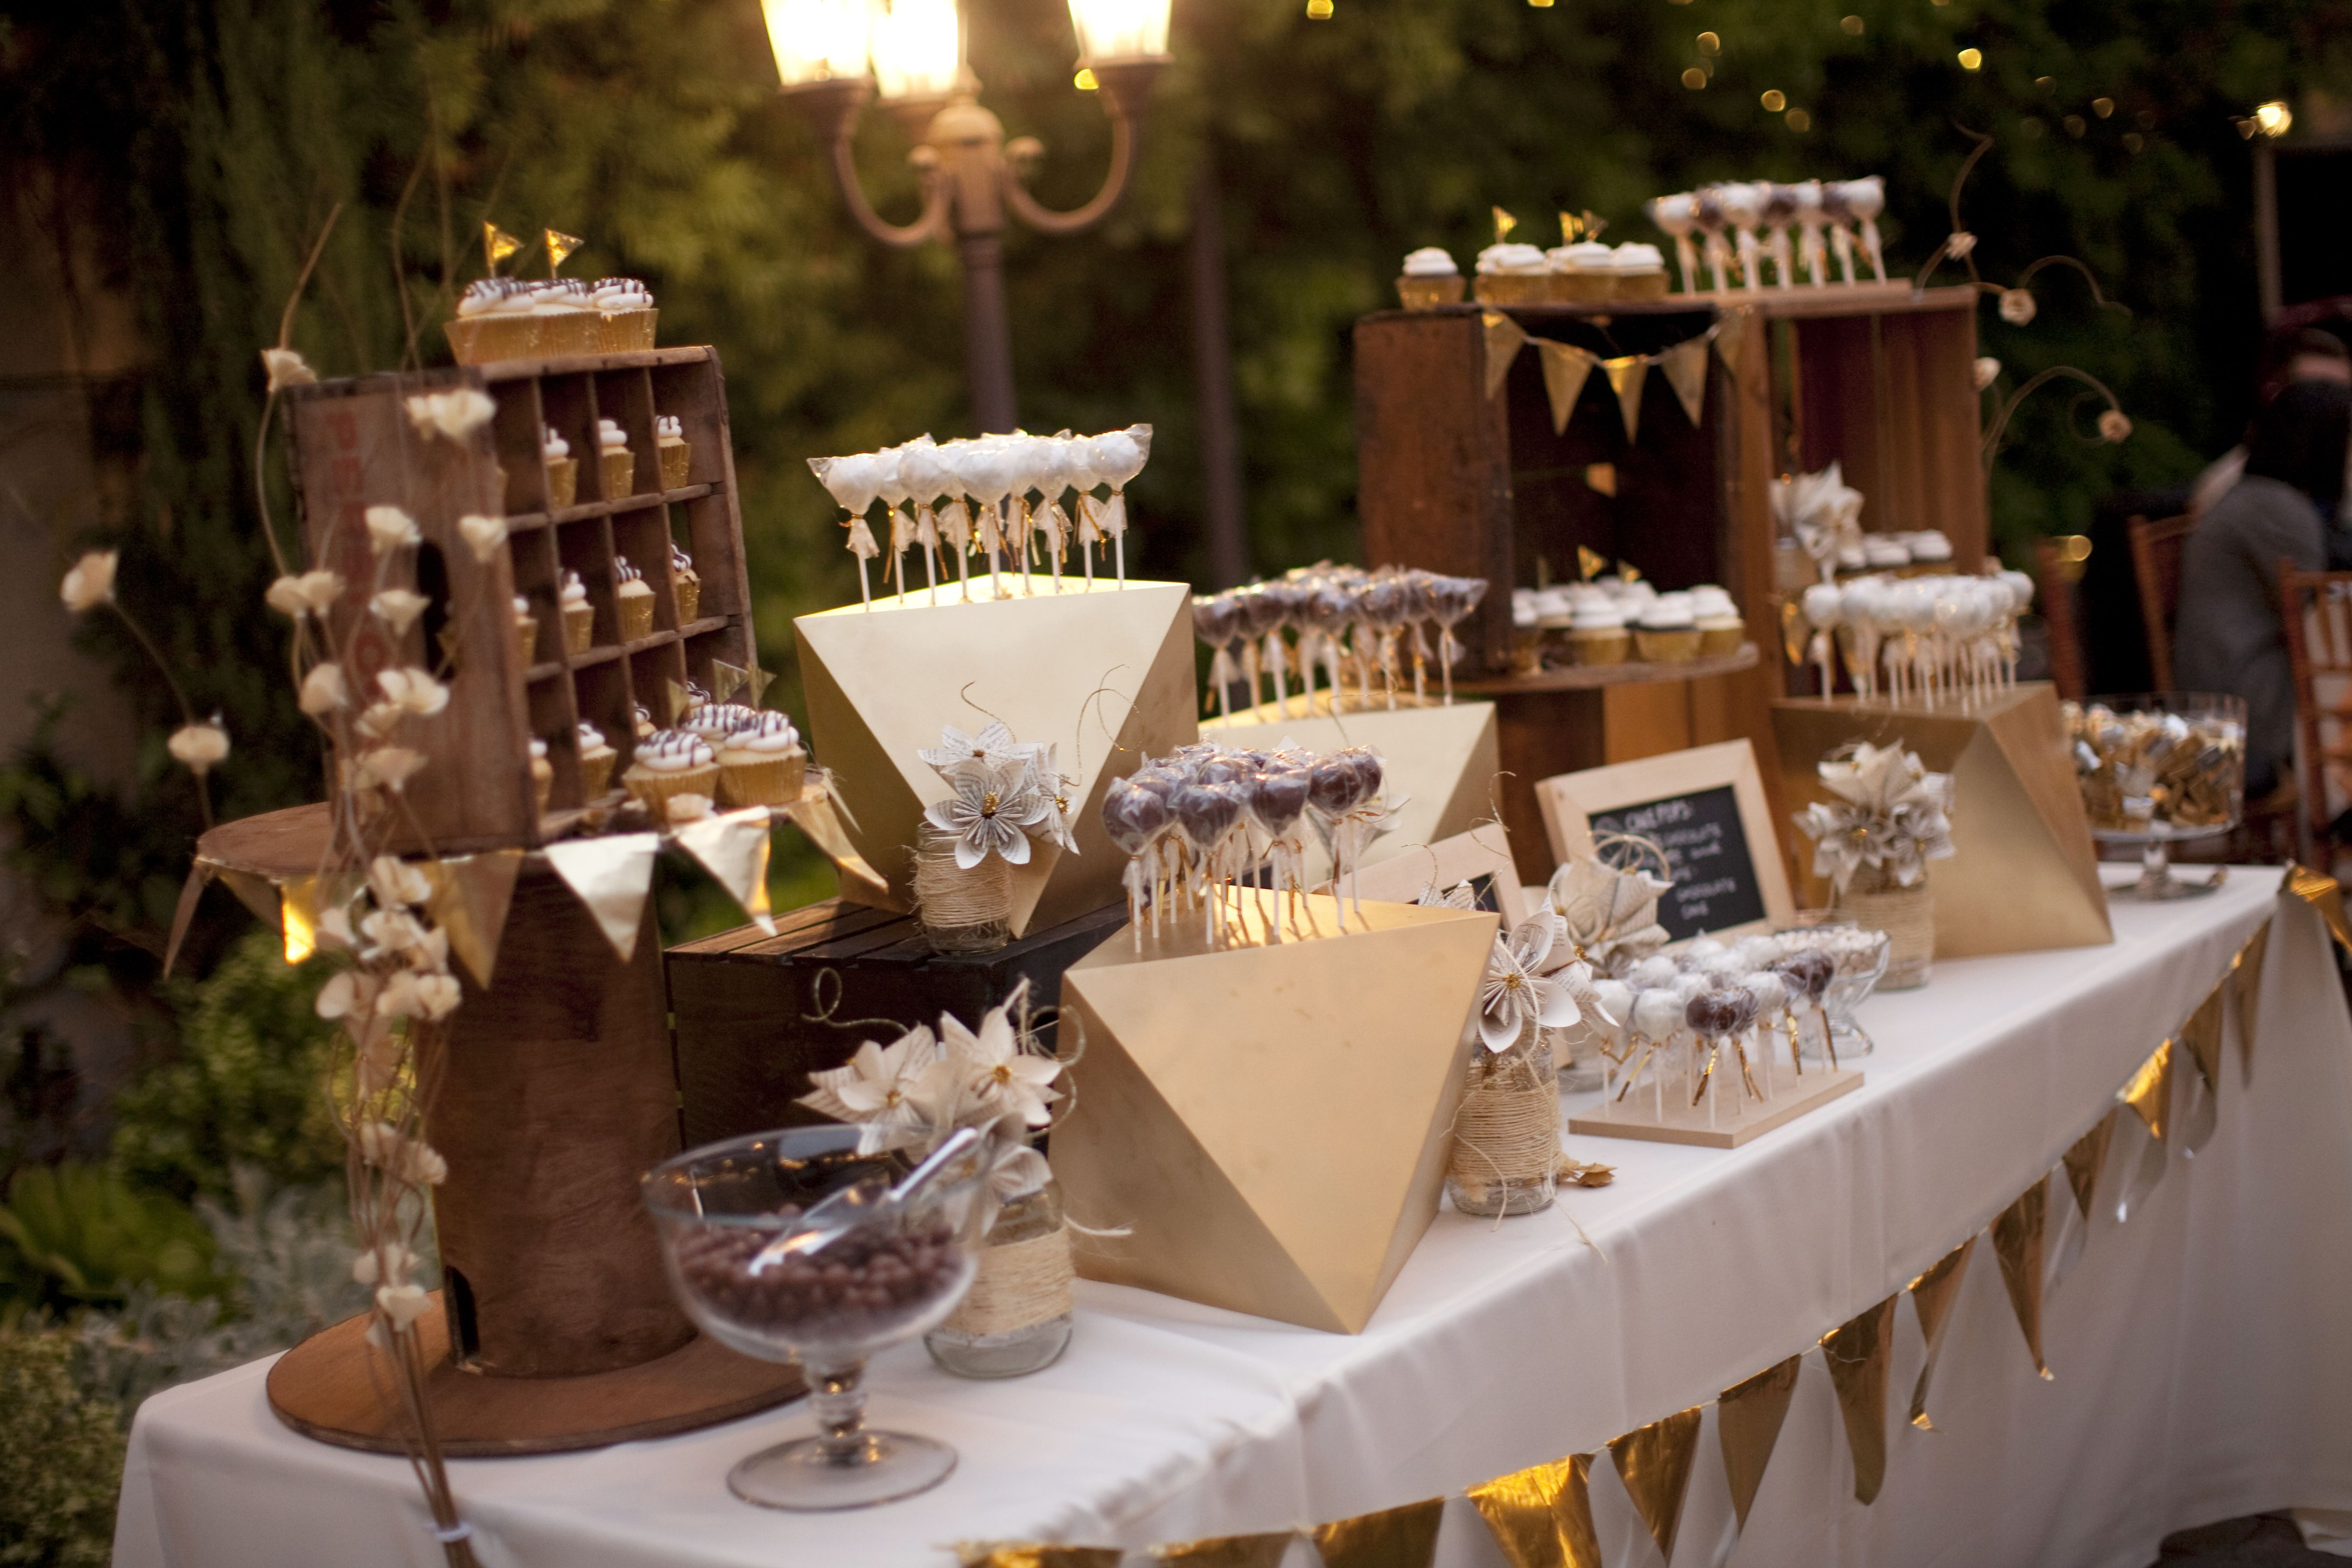 rustic wedding candy bar images galleries with a bite. Black Bedroom Furniture Sets. Home Design Ideas